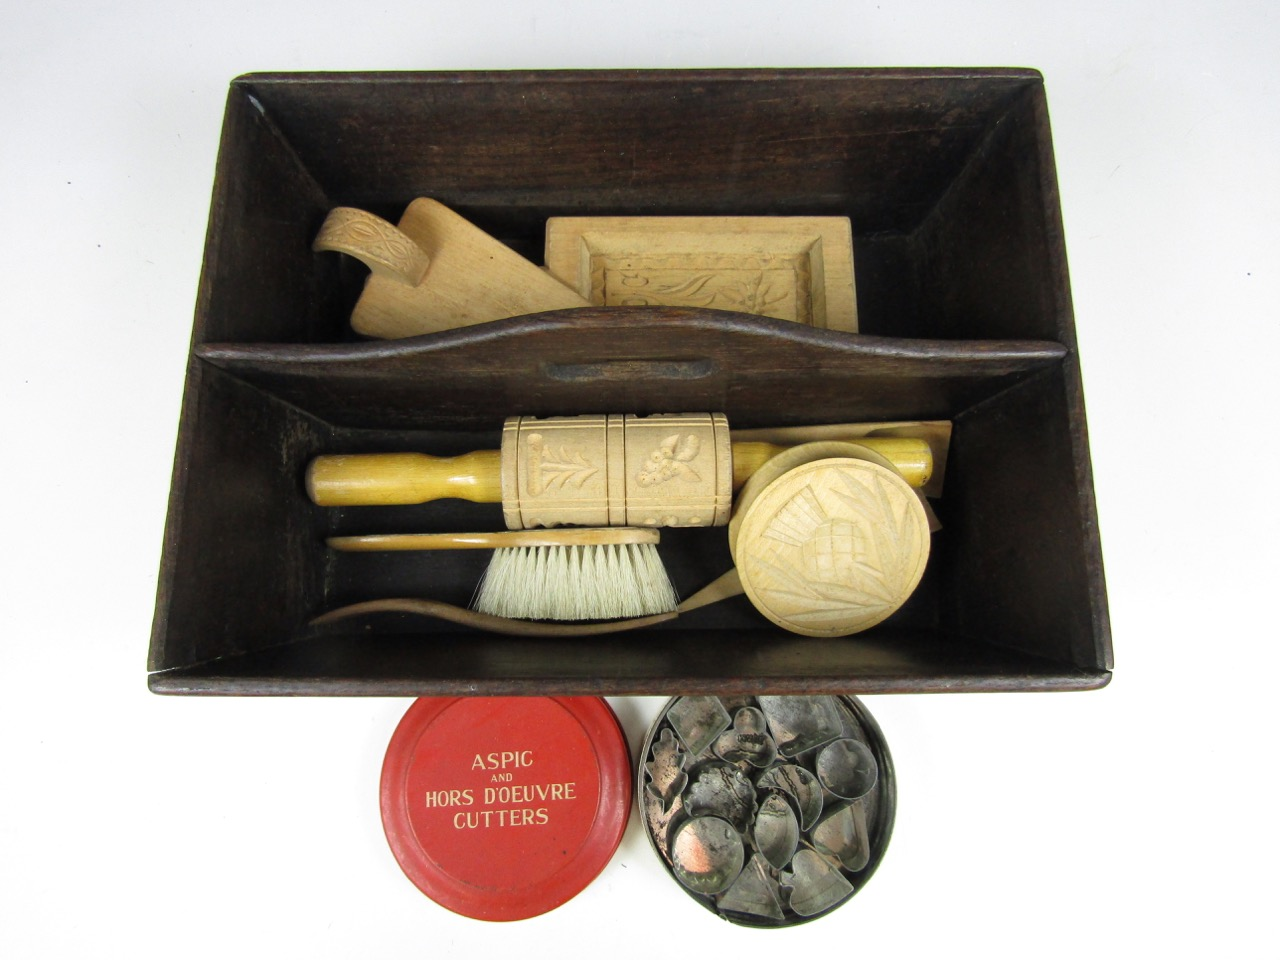 Lot 27 - Sundry kitchenalia including a cutlery box, wooden moulds and stamps together with a vintage tin